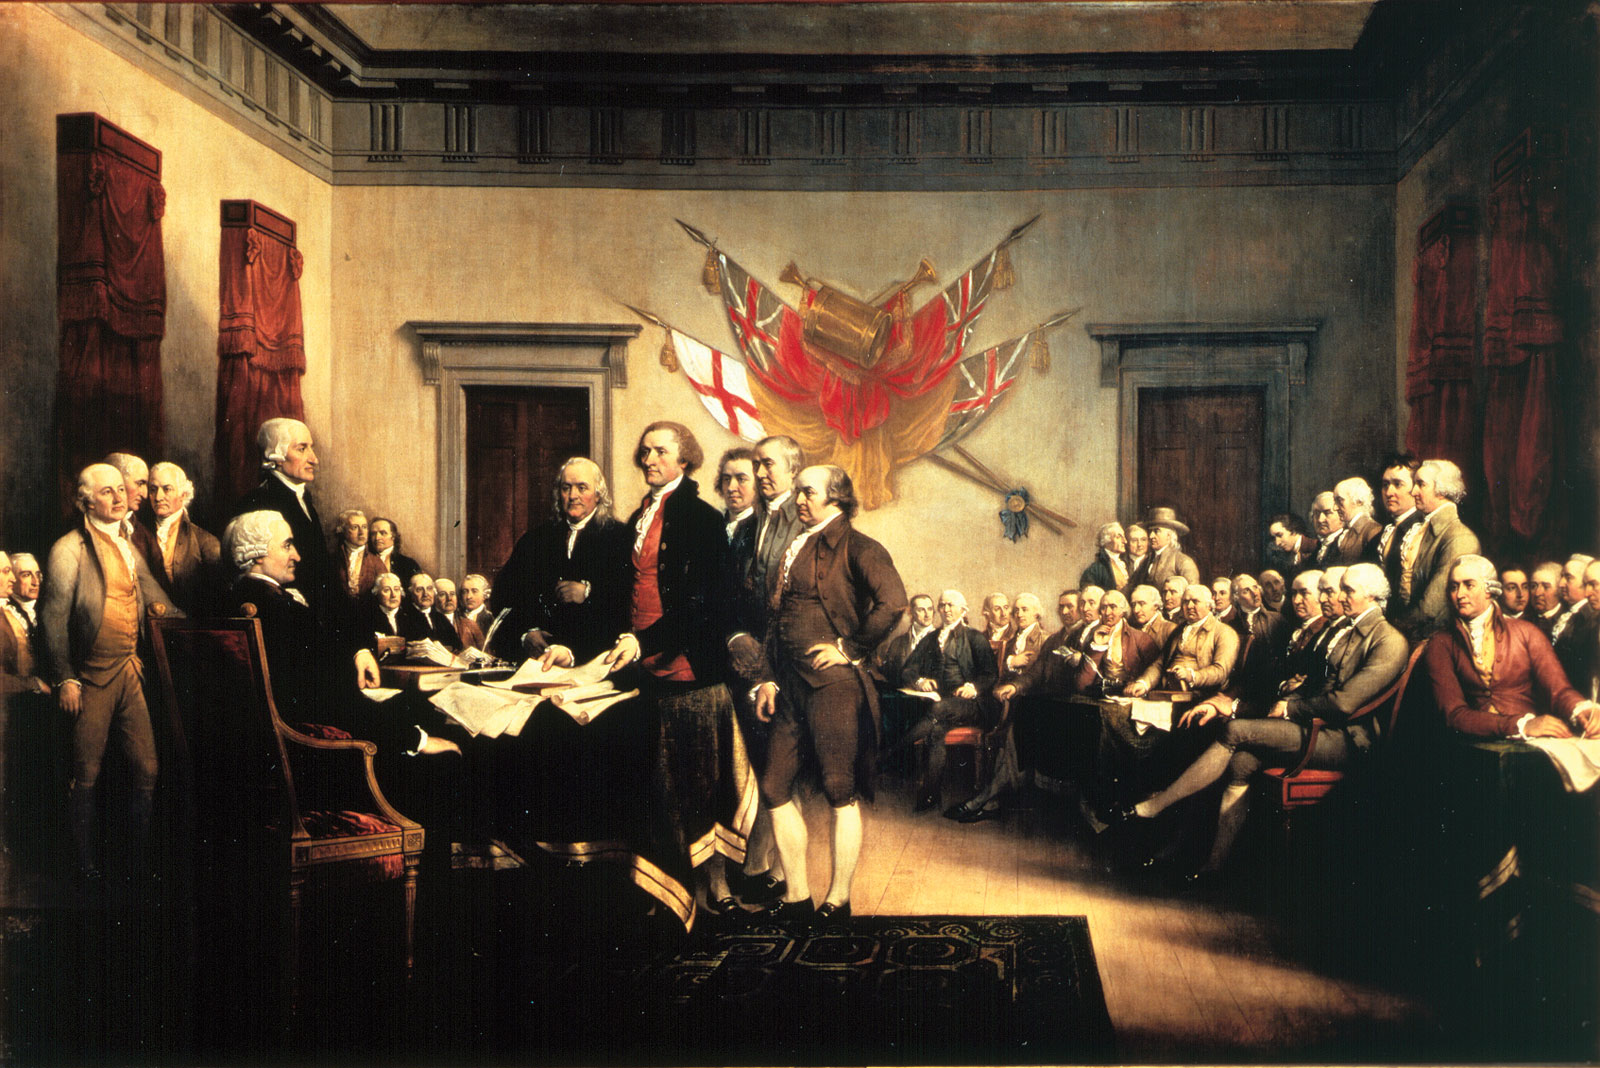 the declaration of independence gave birth to freedom